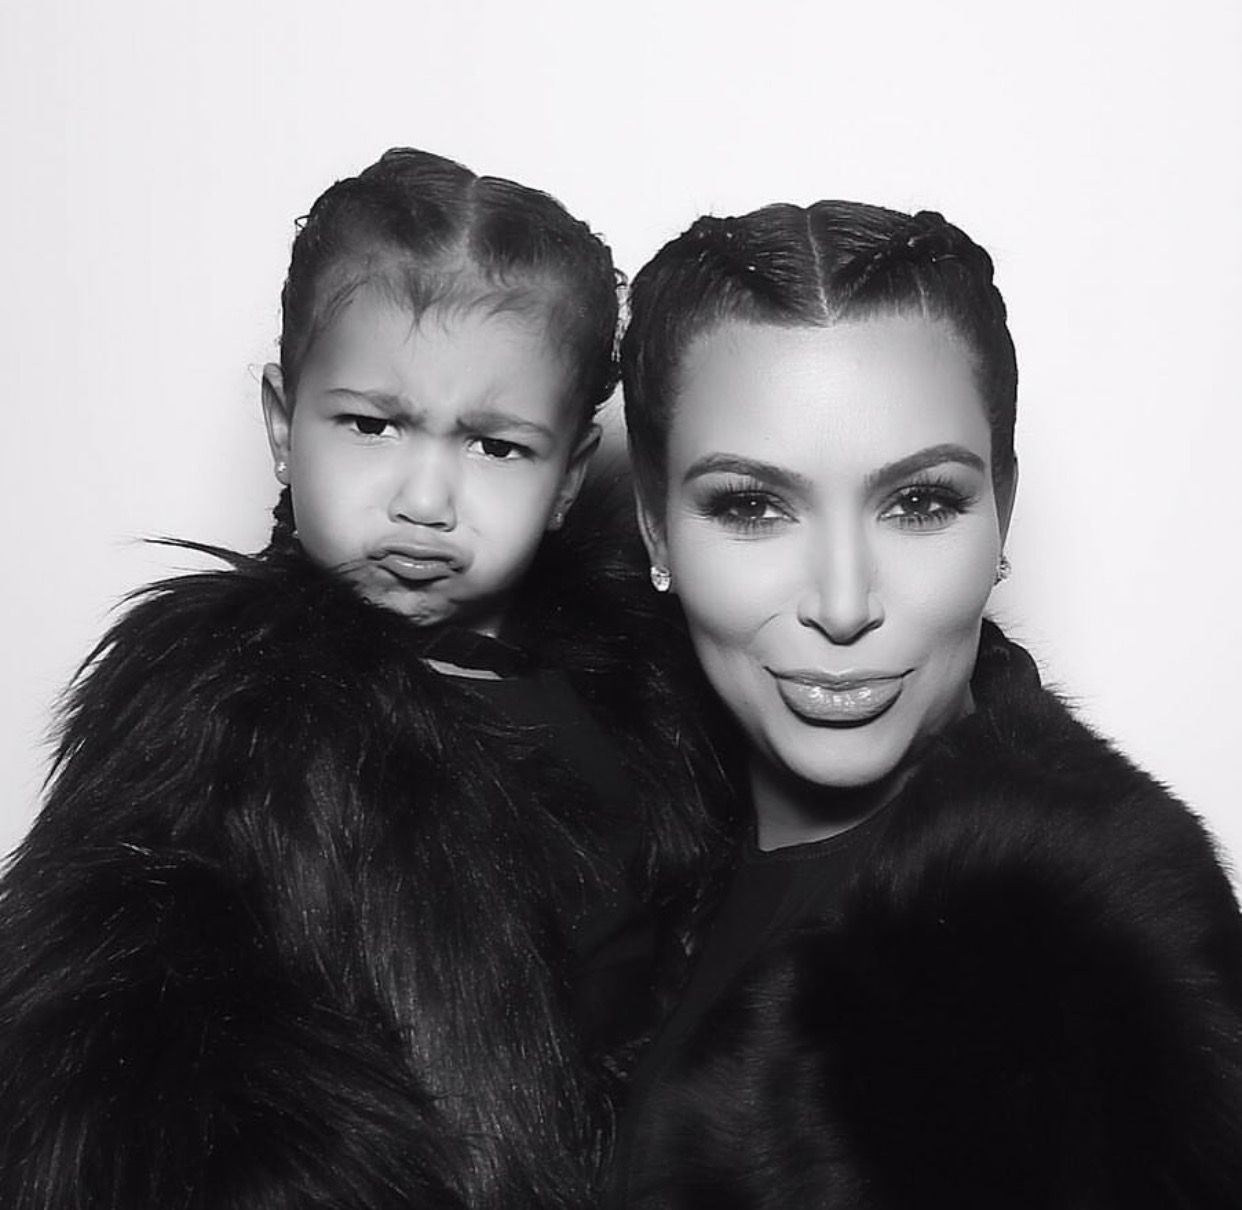 Kim kardashian and north image by Marie Kline on Our Home